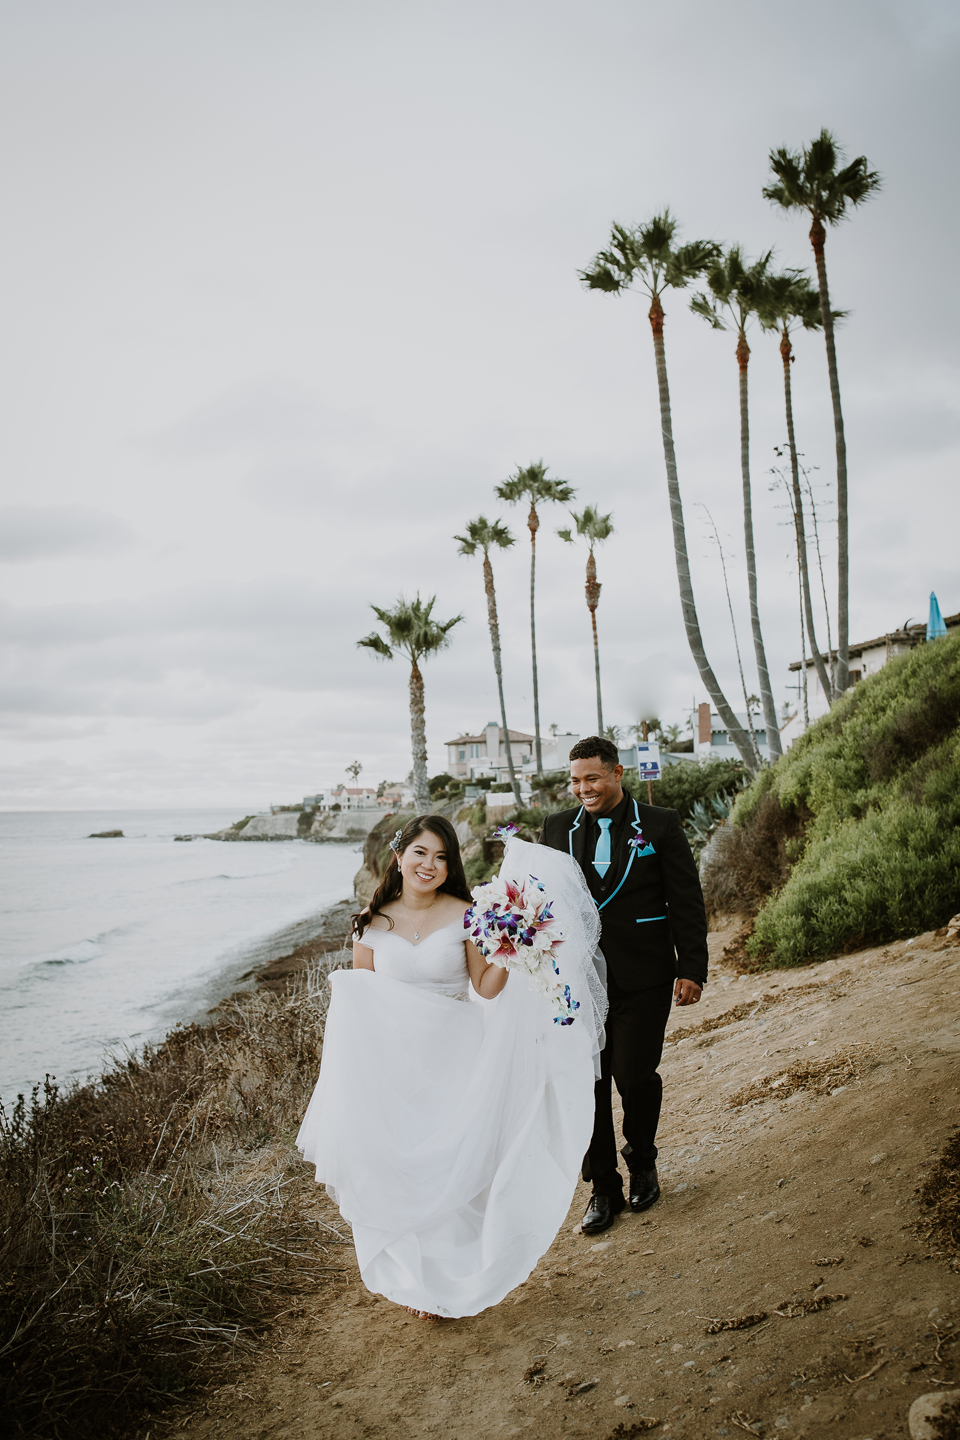 WEDDING photos: Calumet Park, La Jolla